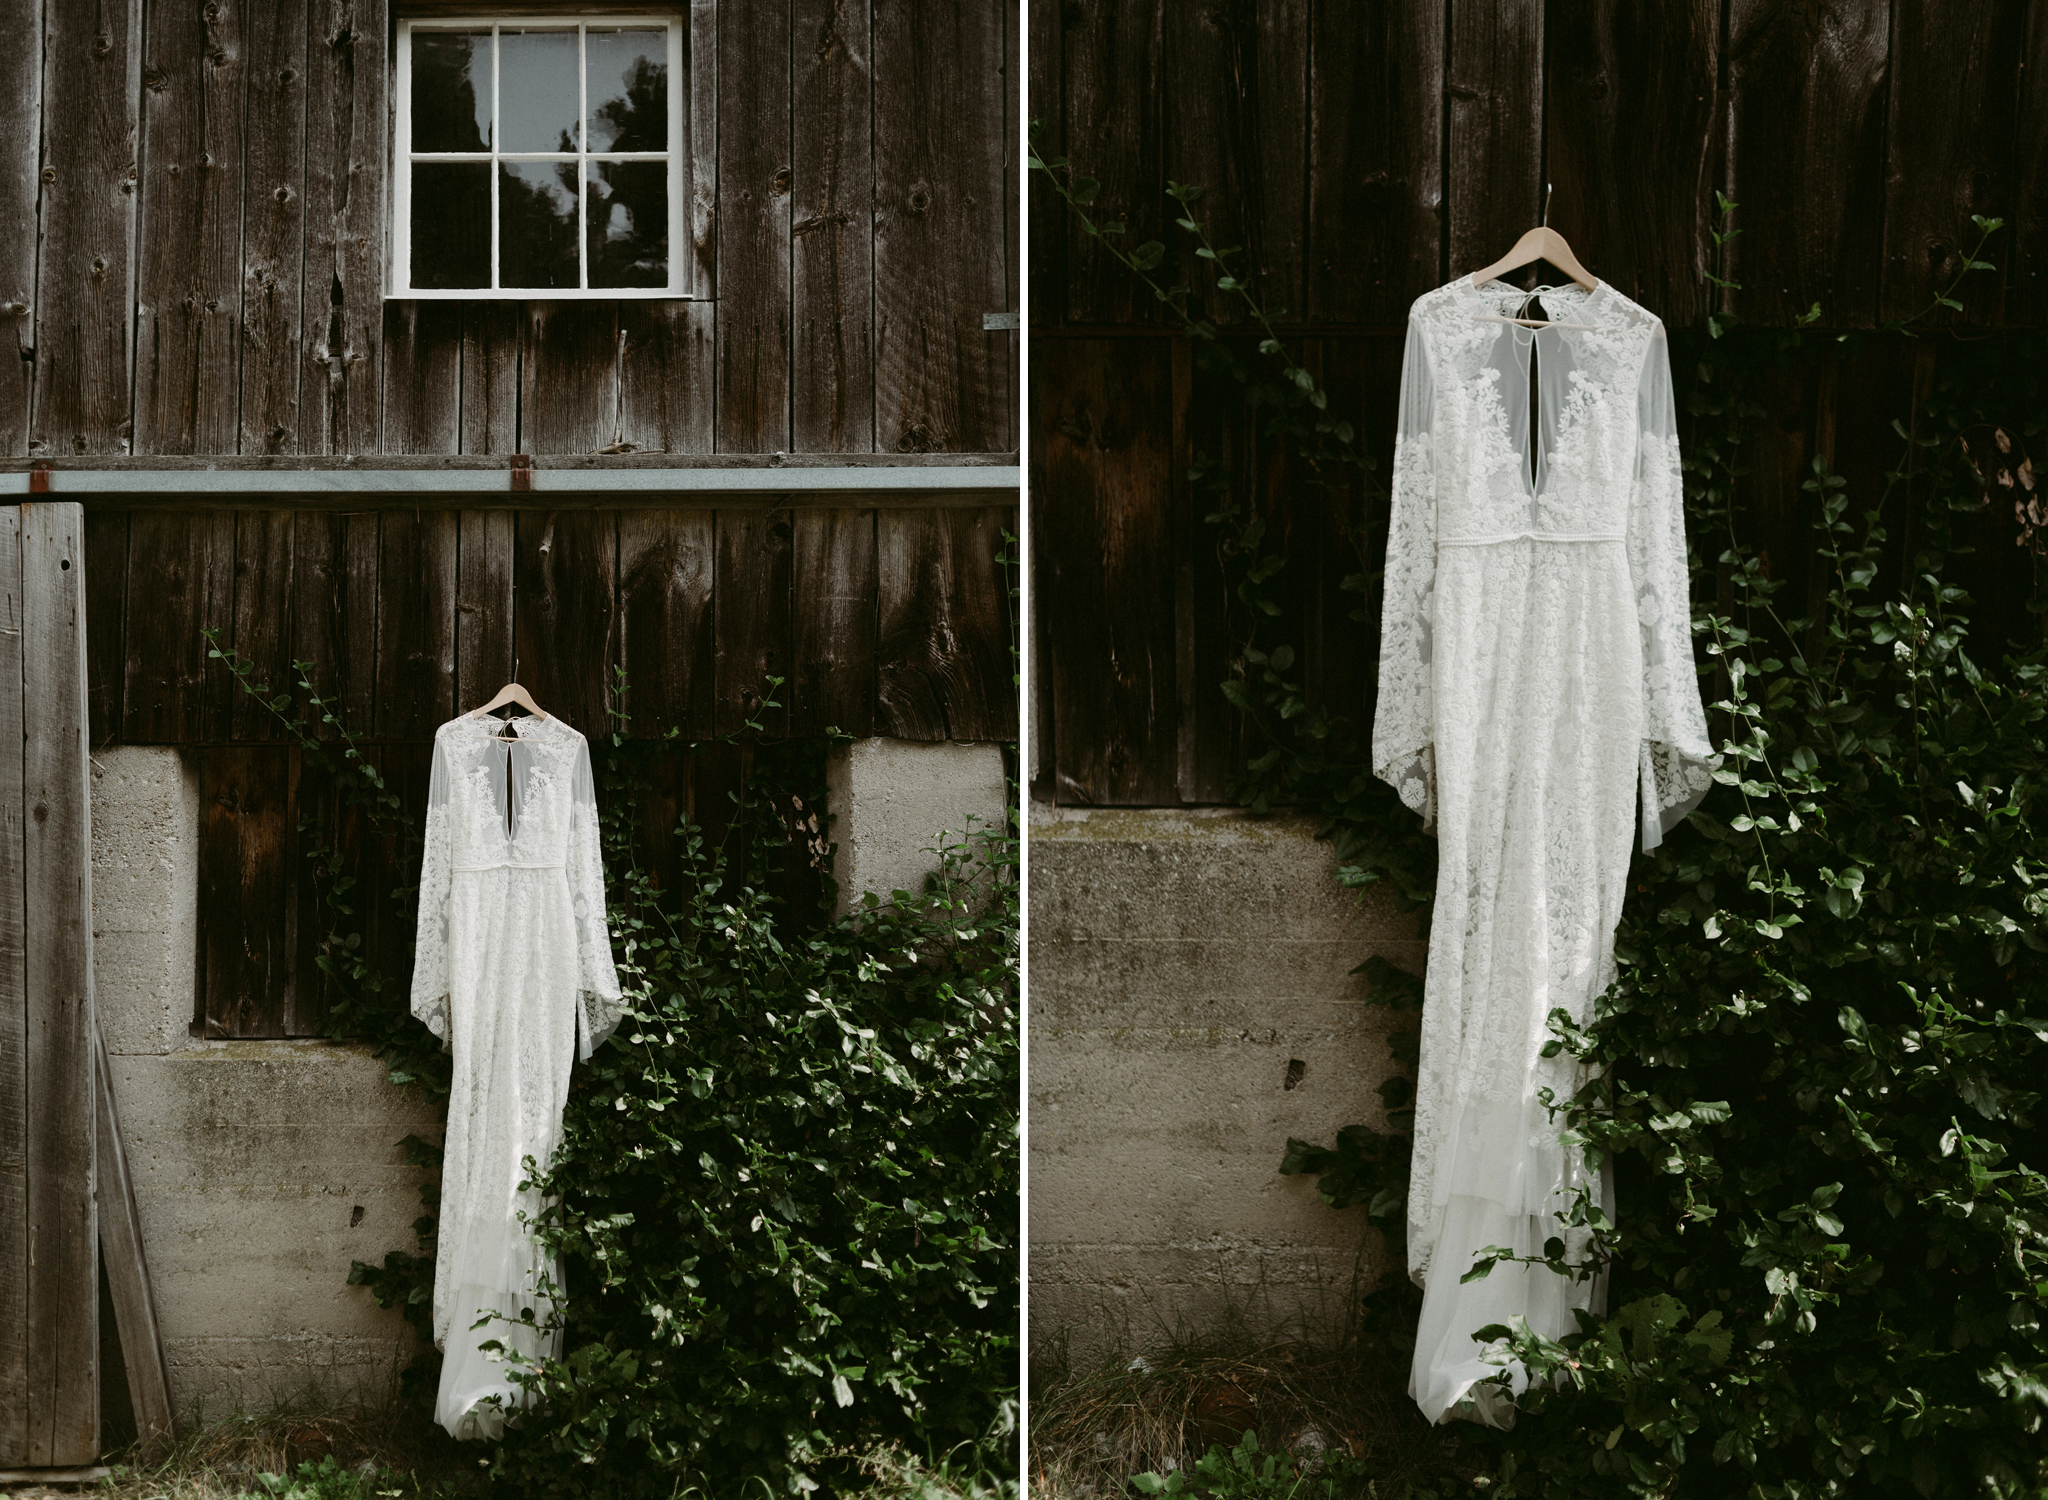 Rue de Seine wedding dress hanging outside barn